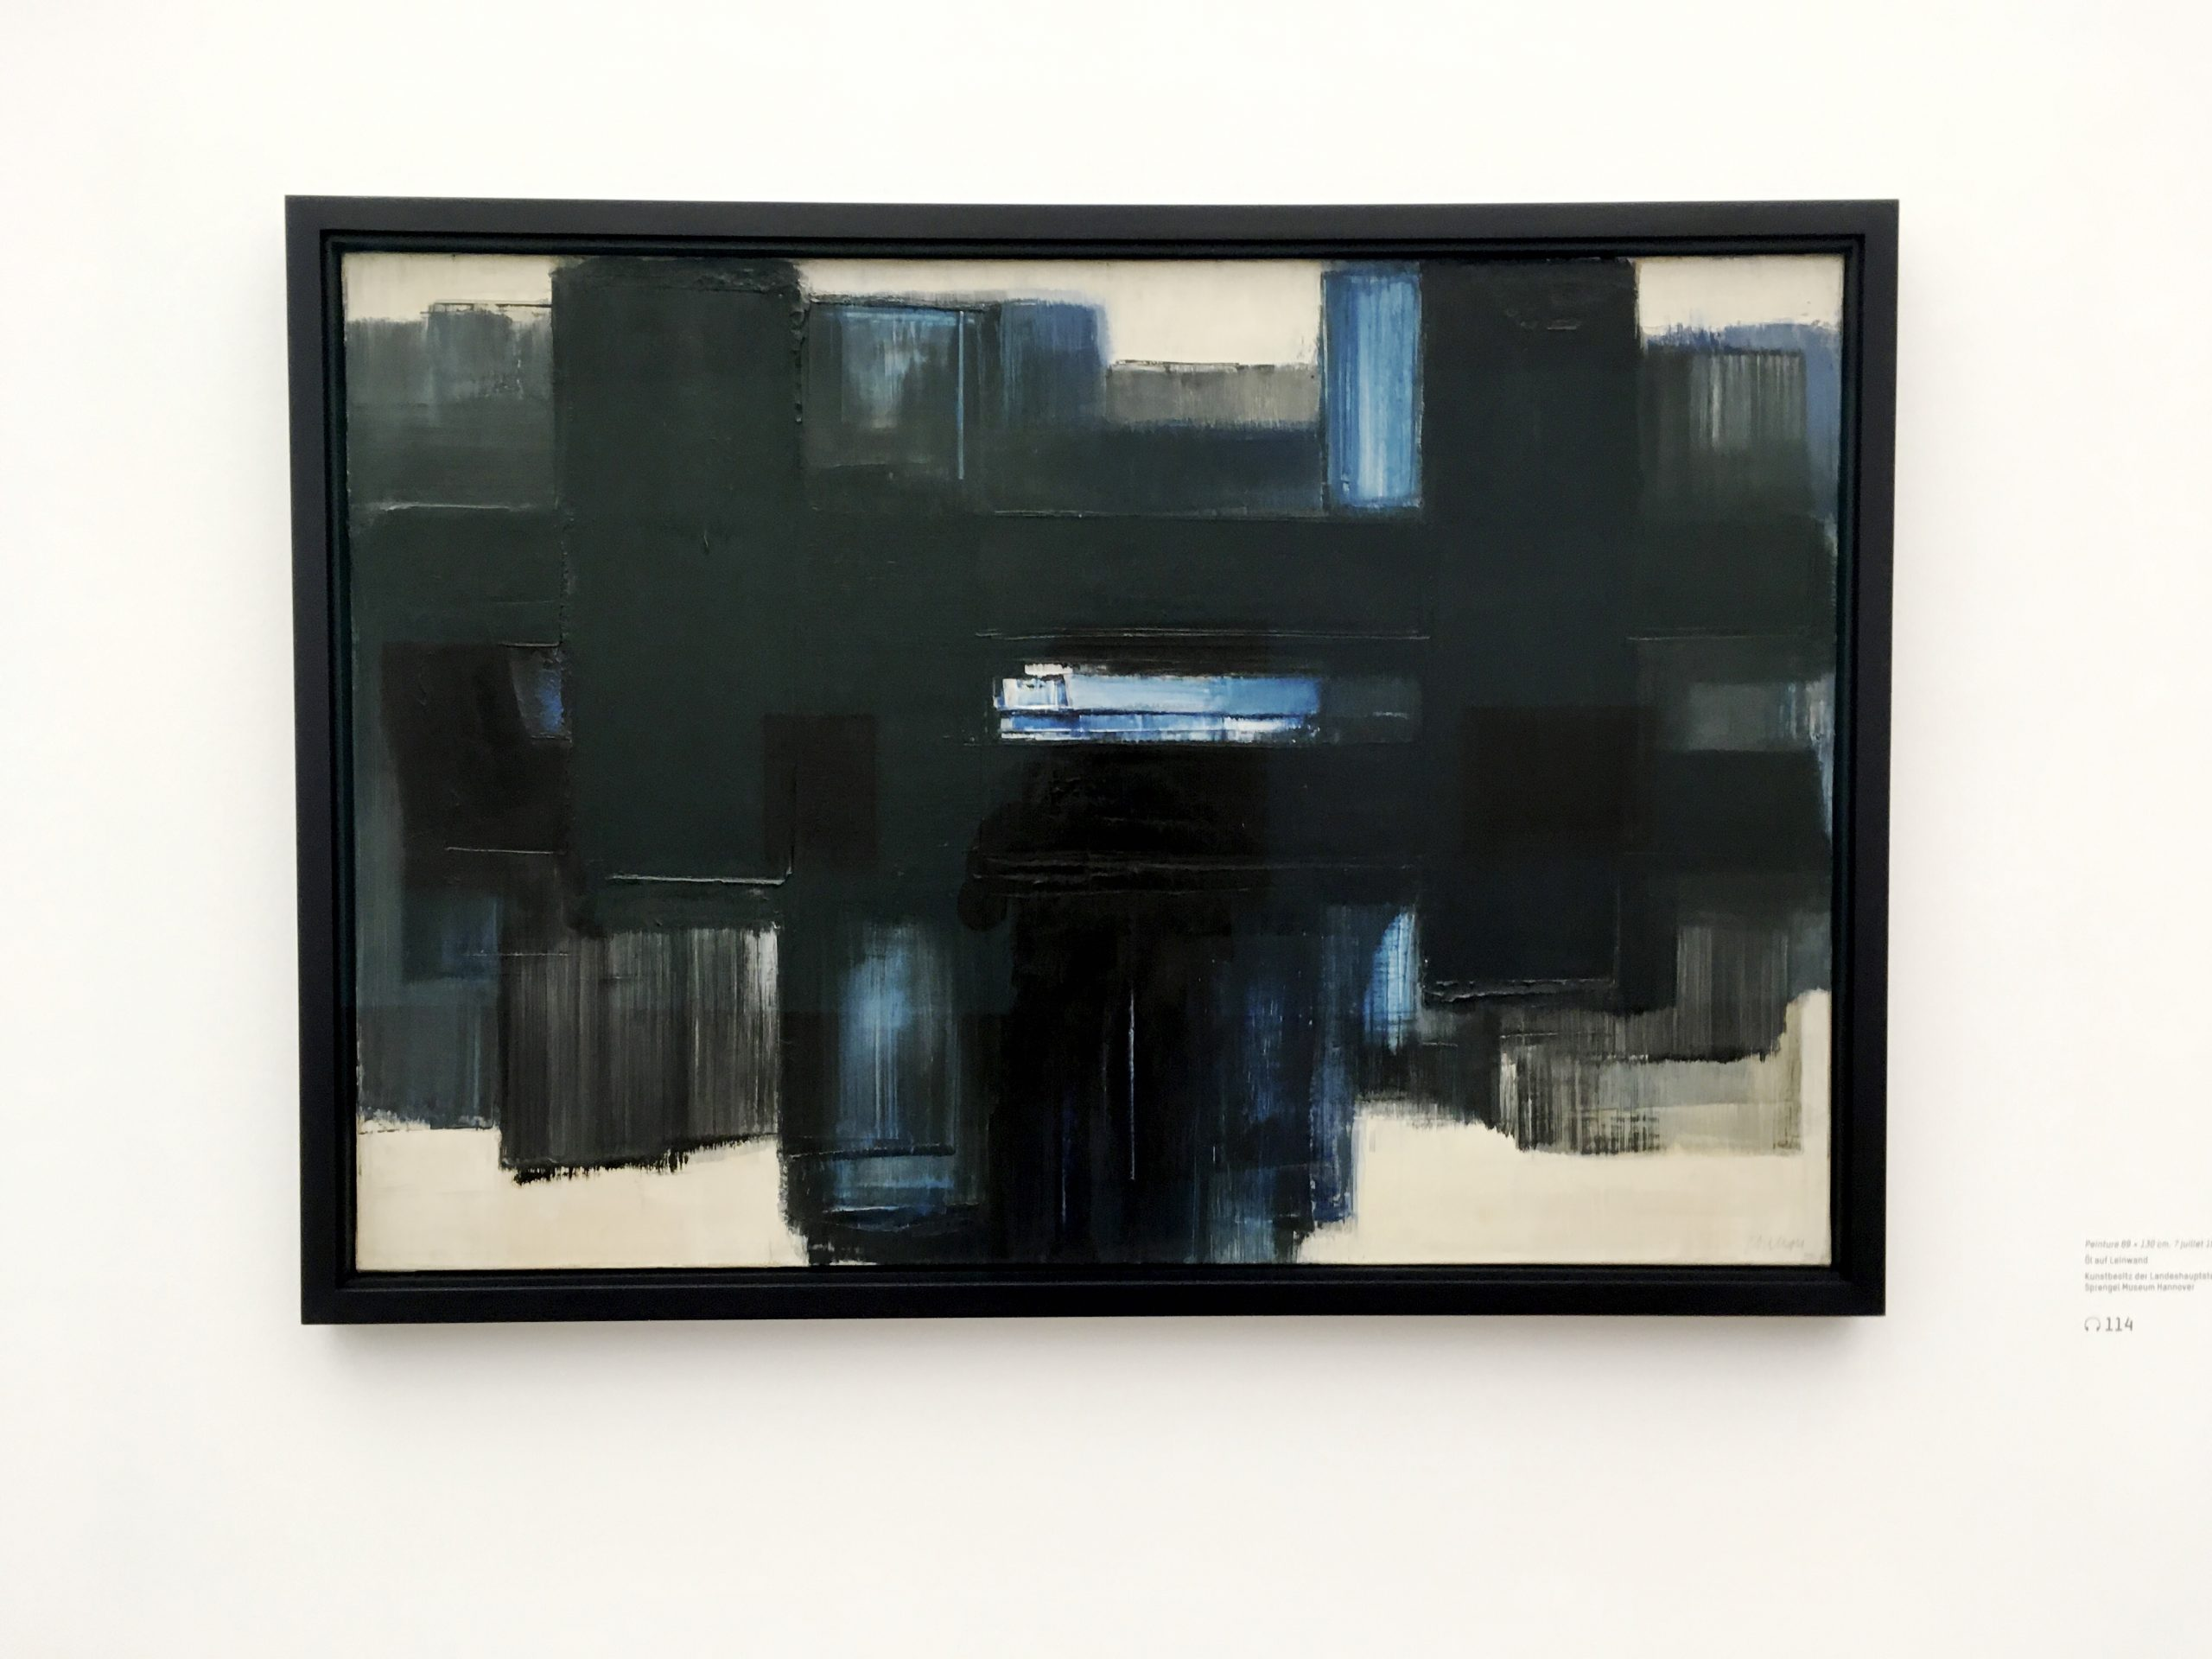 soulages_frieder burda_1957-1958